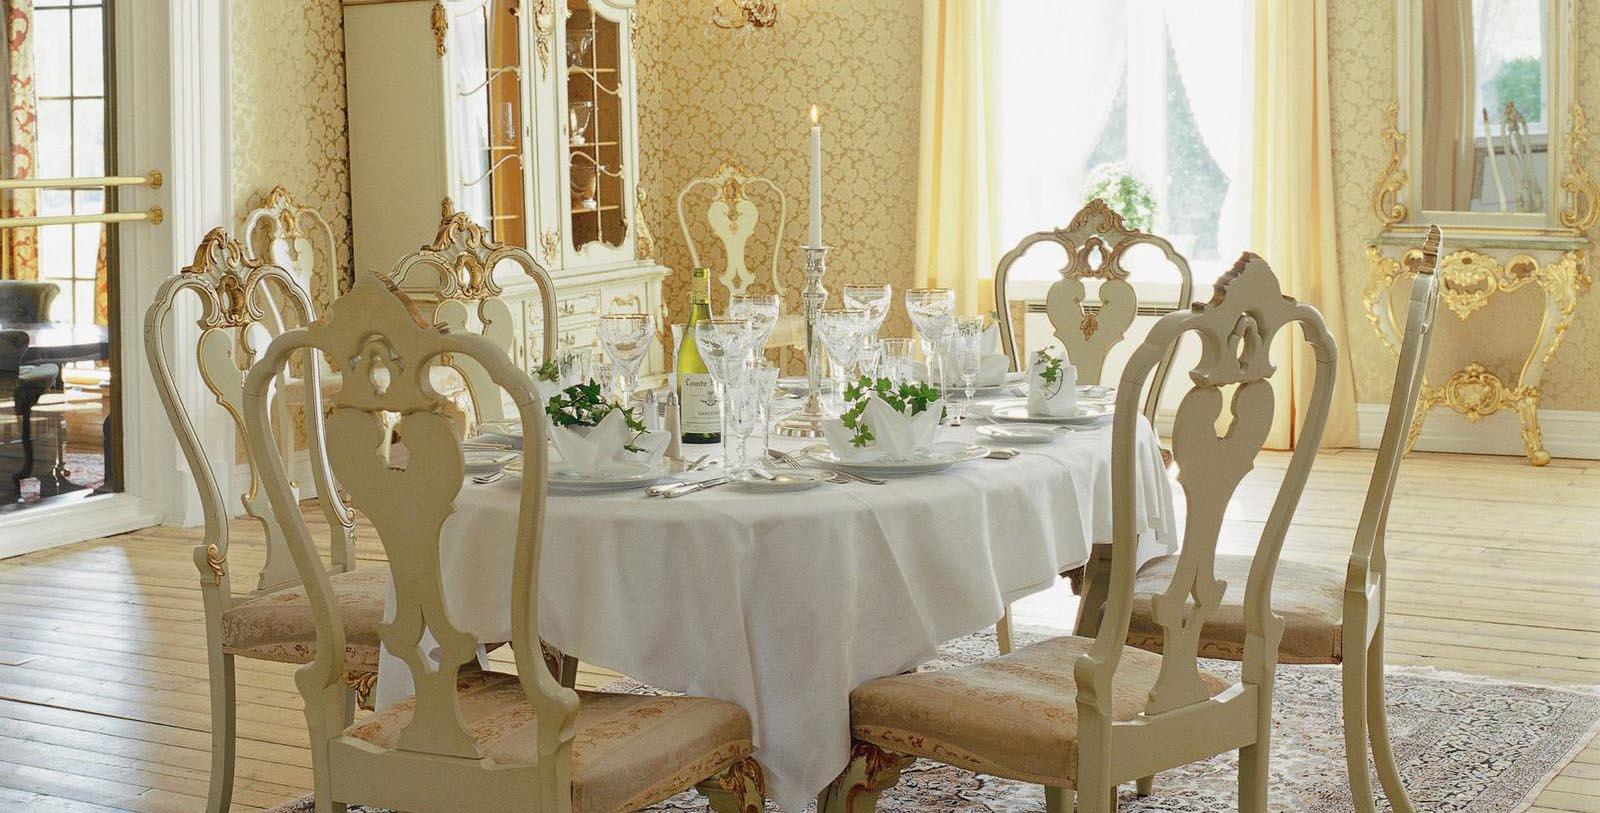 Image of Dining Area Losby Gods, 1744, Member of Historic Hotels Worldwide, in Finstadjordet, Norway, Special Occasions